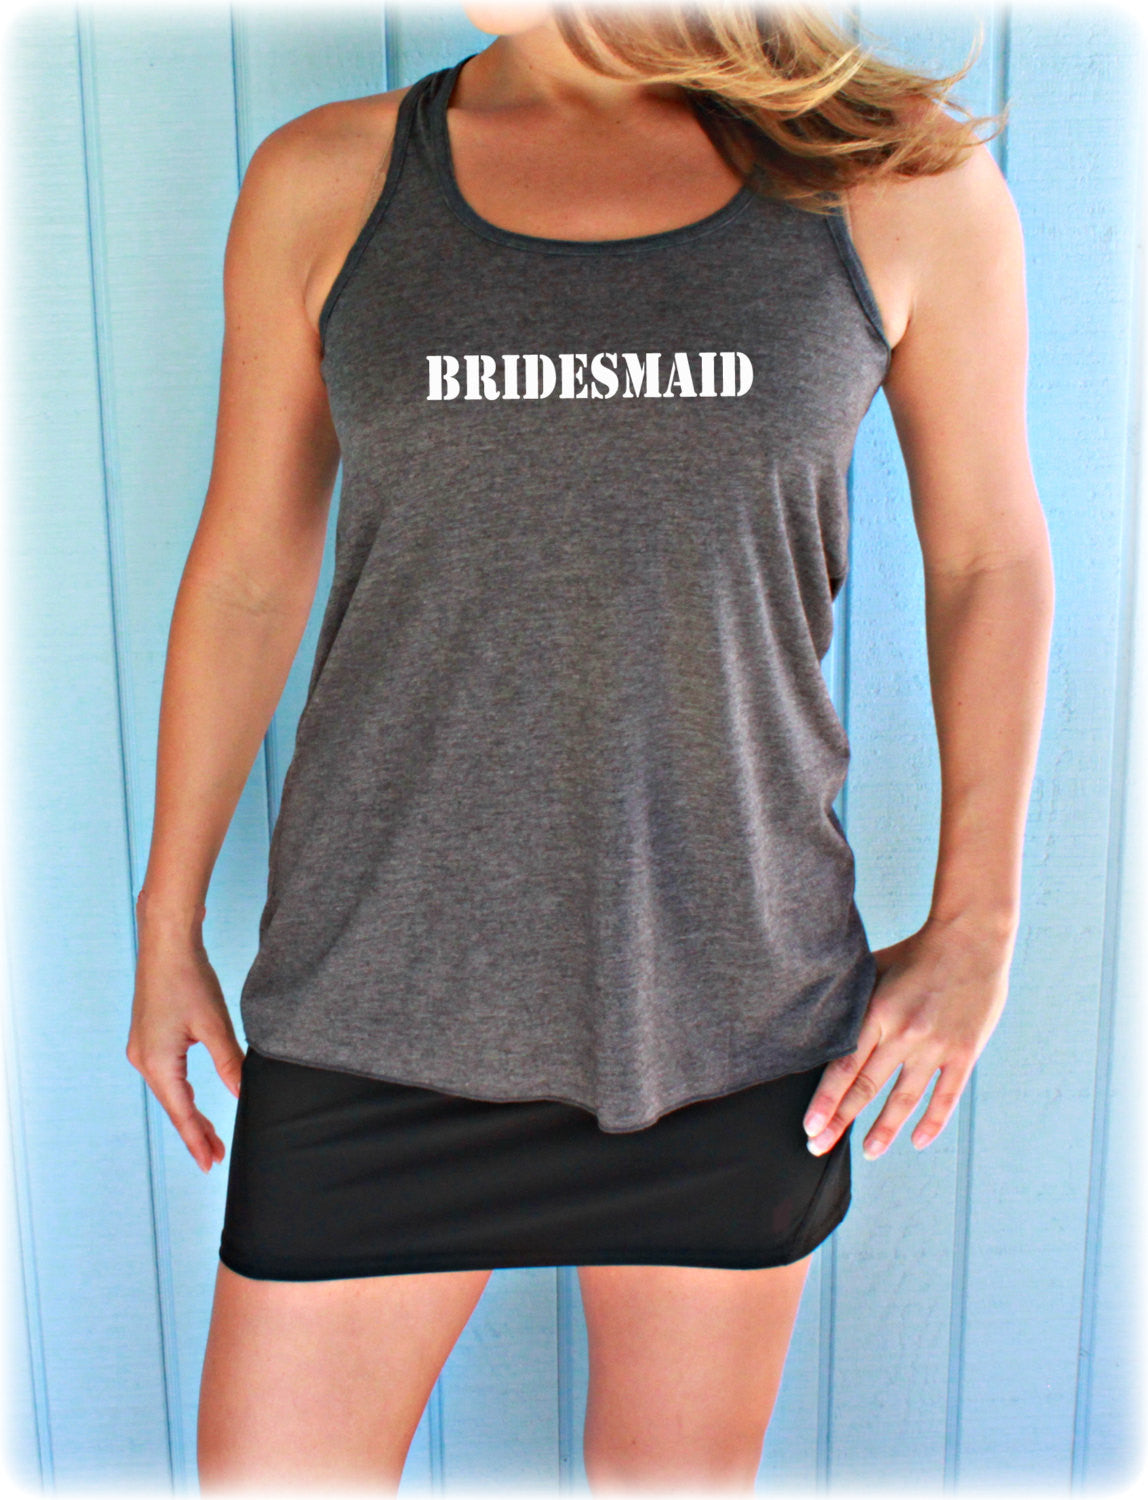 1, 2 or 3 Flowy Bridesmaid Tank Tops. Military Bride Shirt. Wedding Bachelorette Party Gift. Bridal Party Tank Tops.